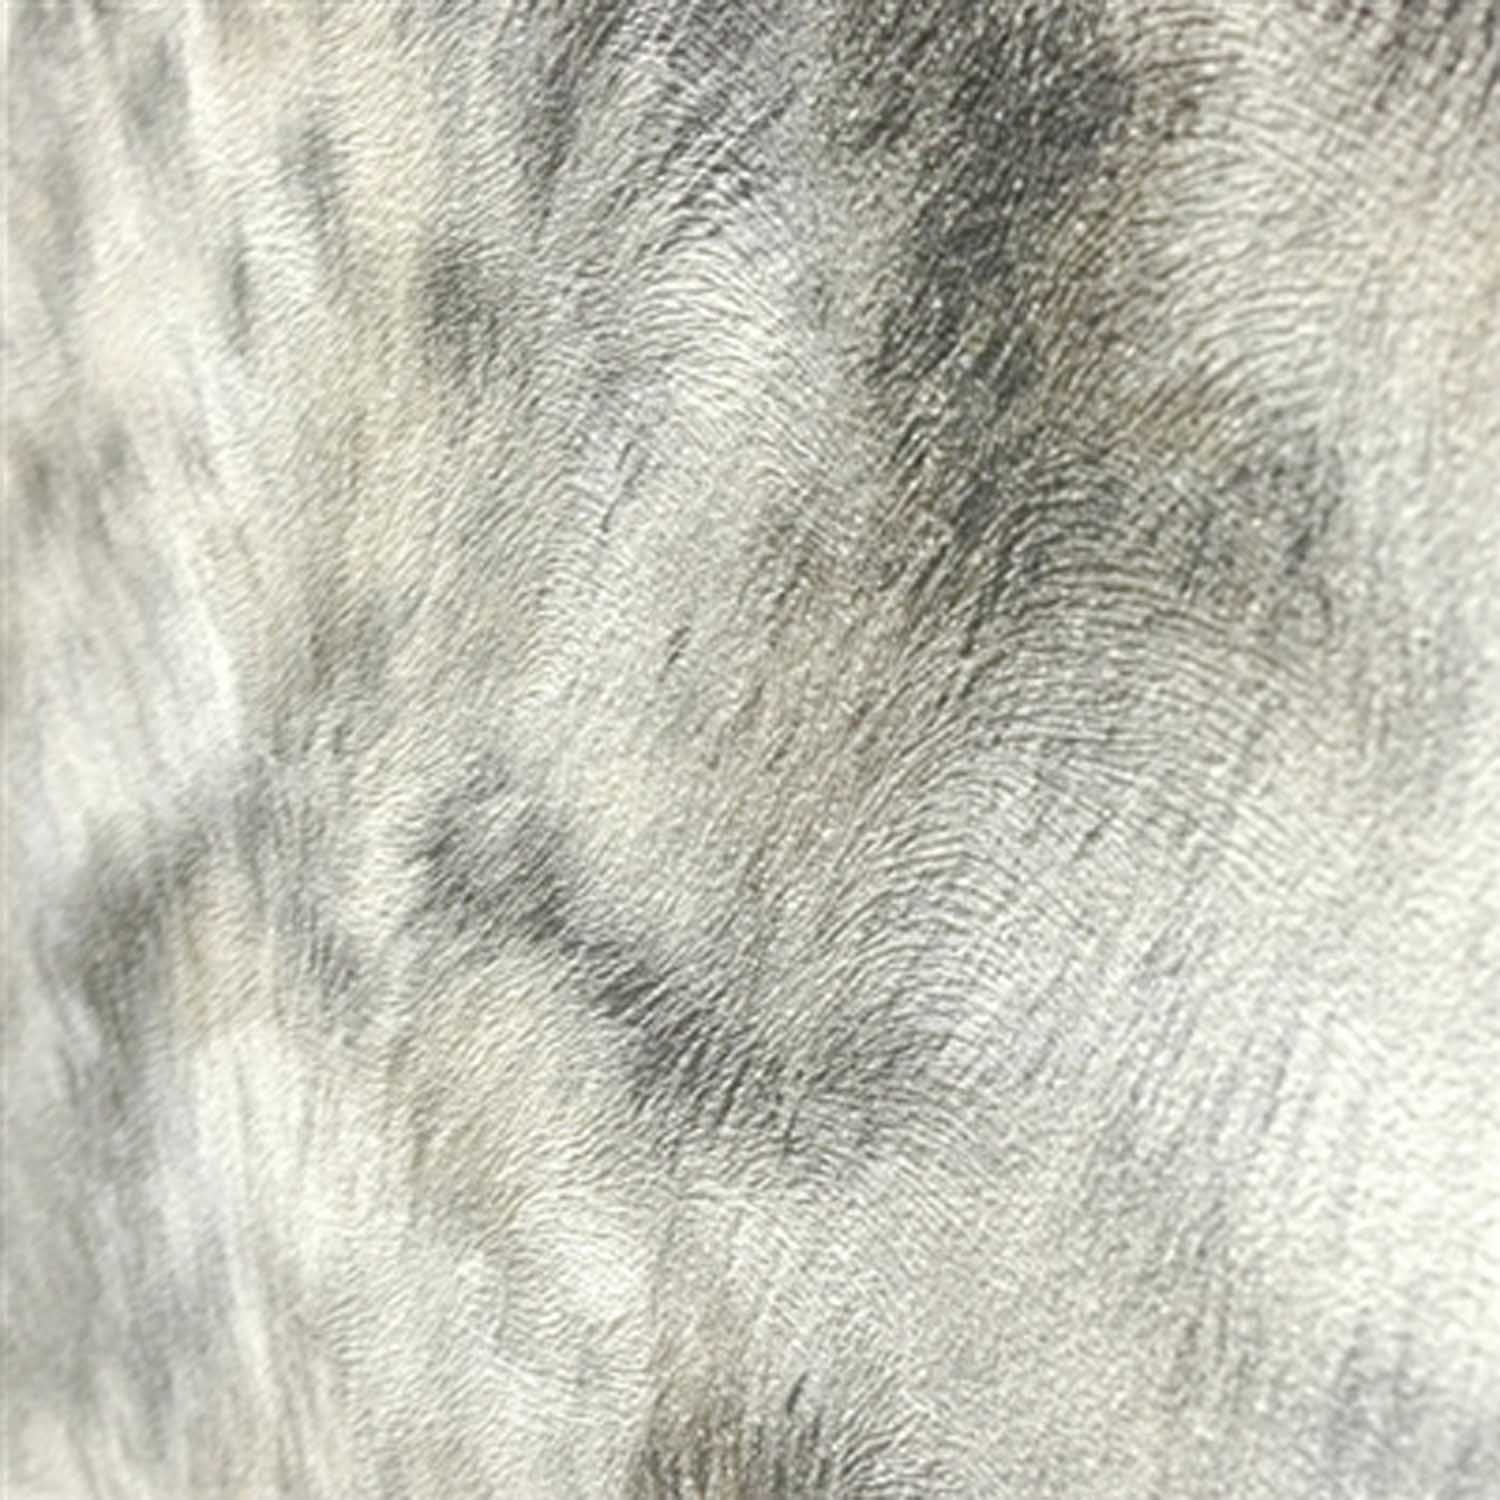 Fur Effect Wallpaper | Grey & White